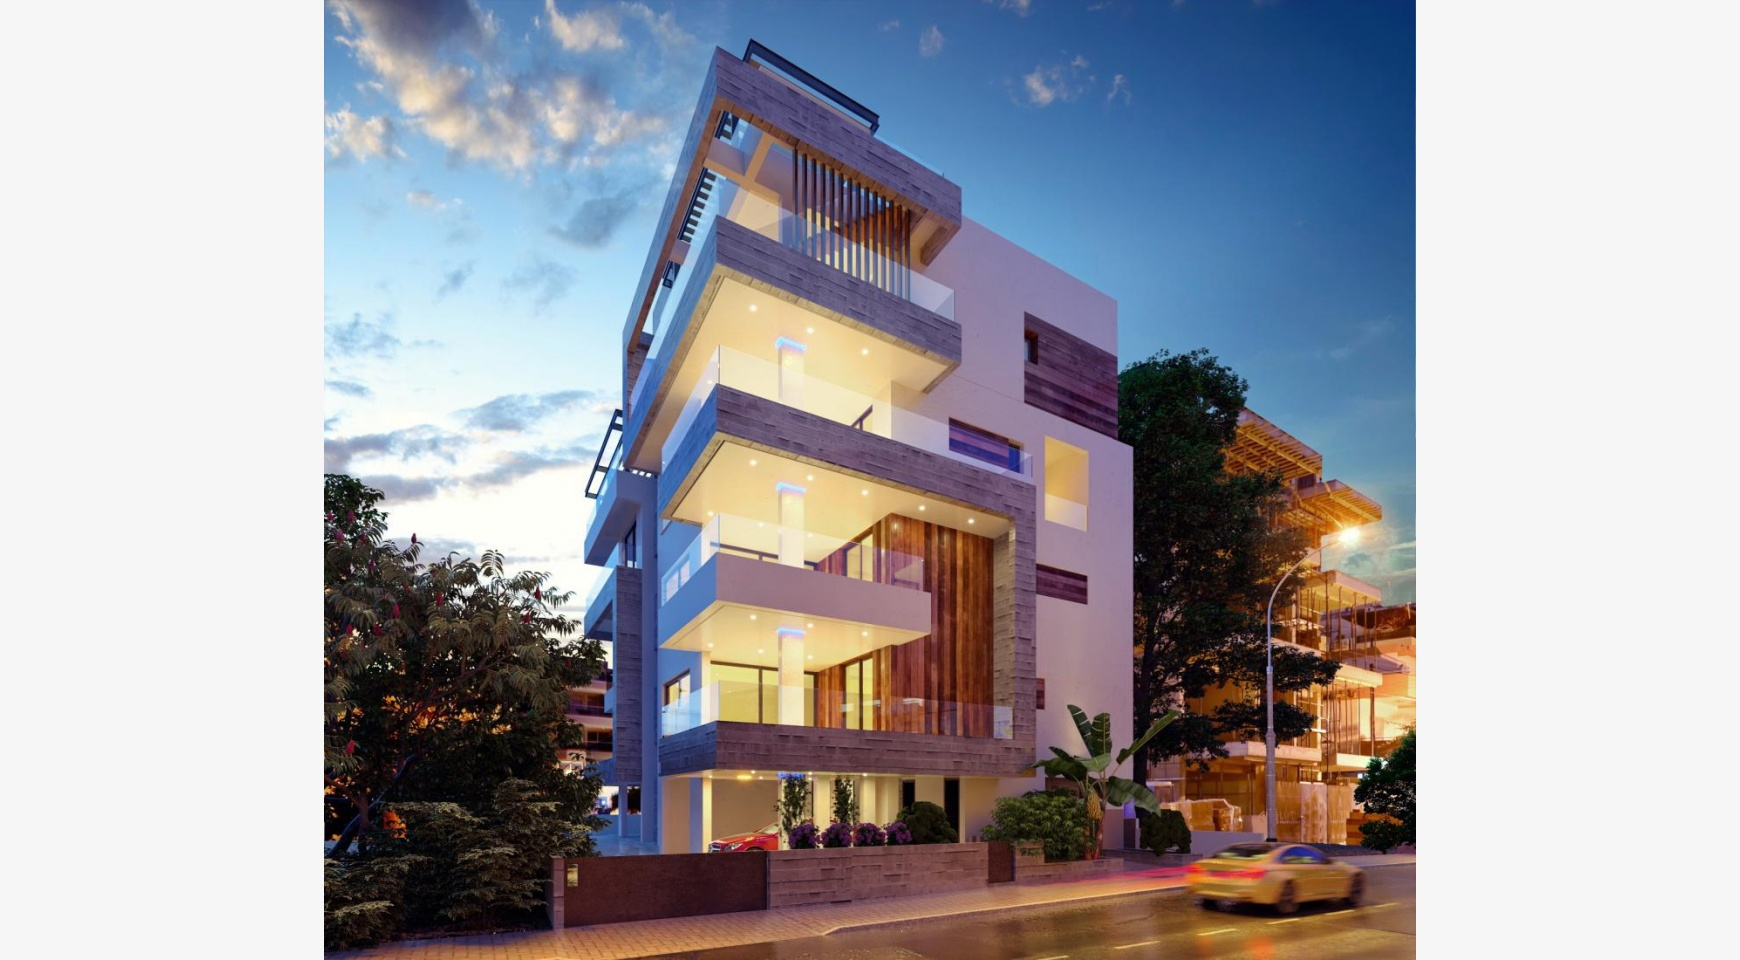 New 3 Bedroom Apartment in a Contemporary Building near the Sea - 1